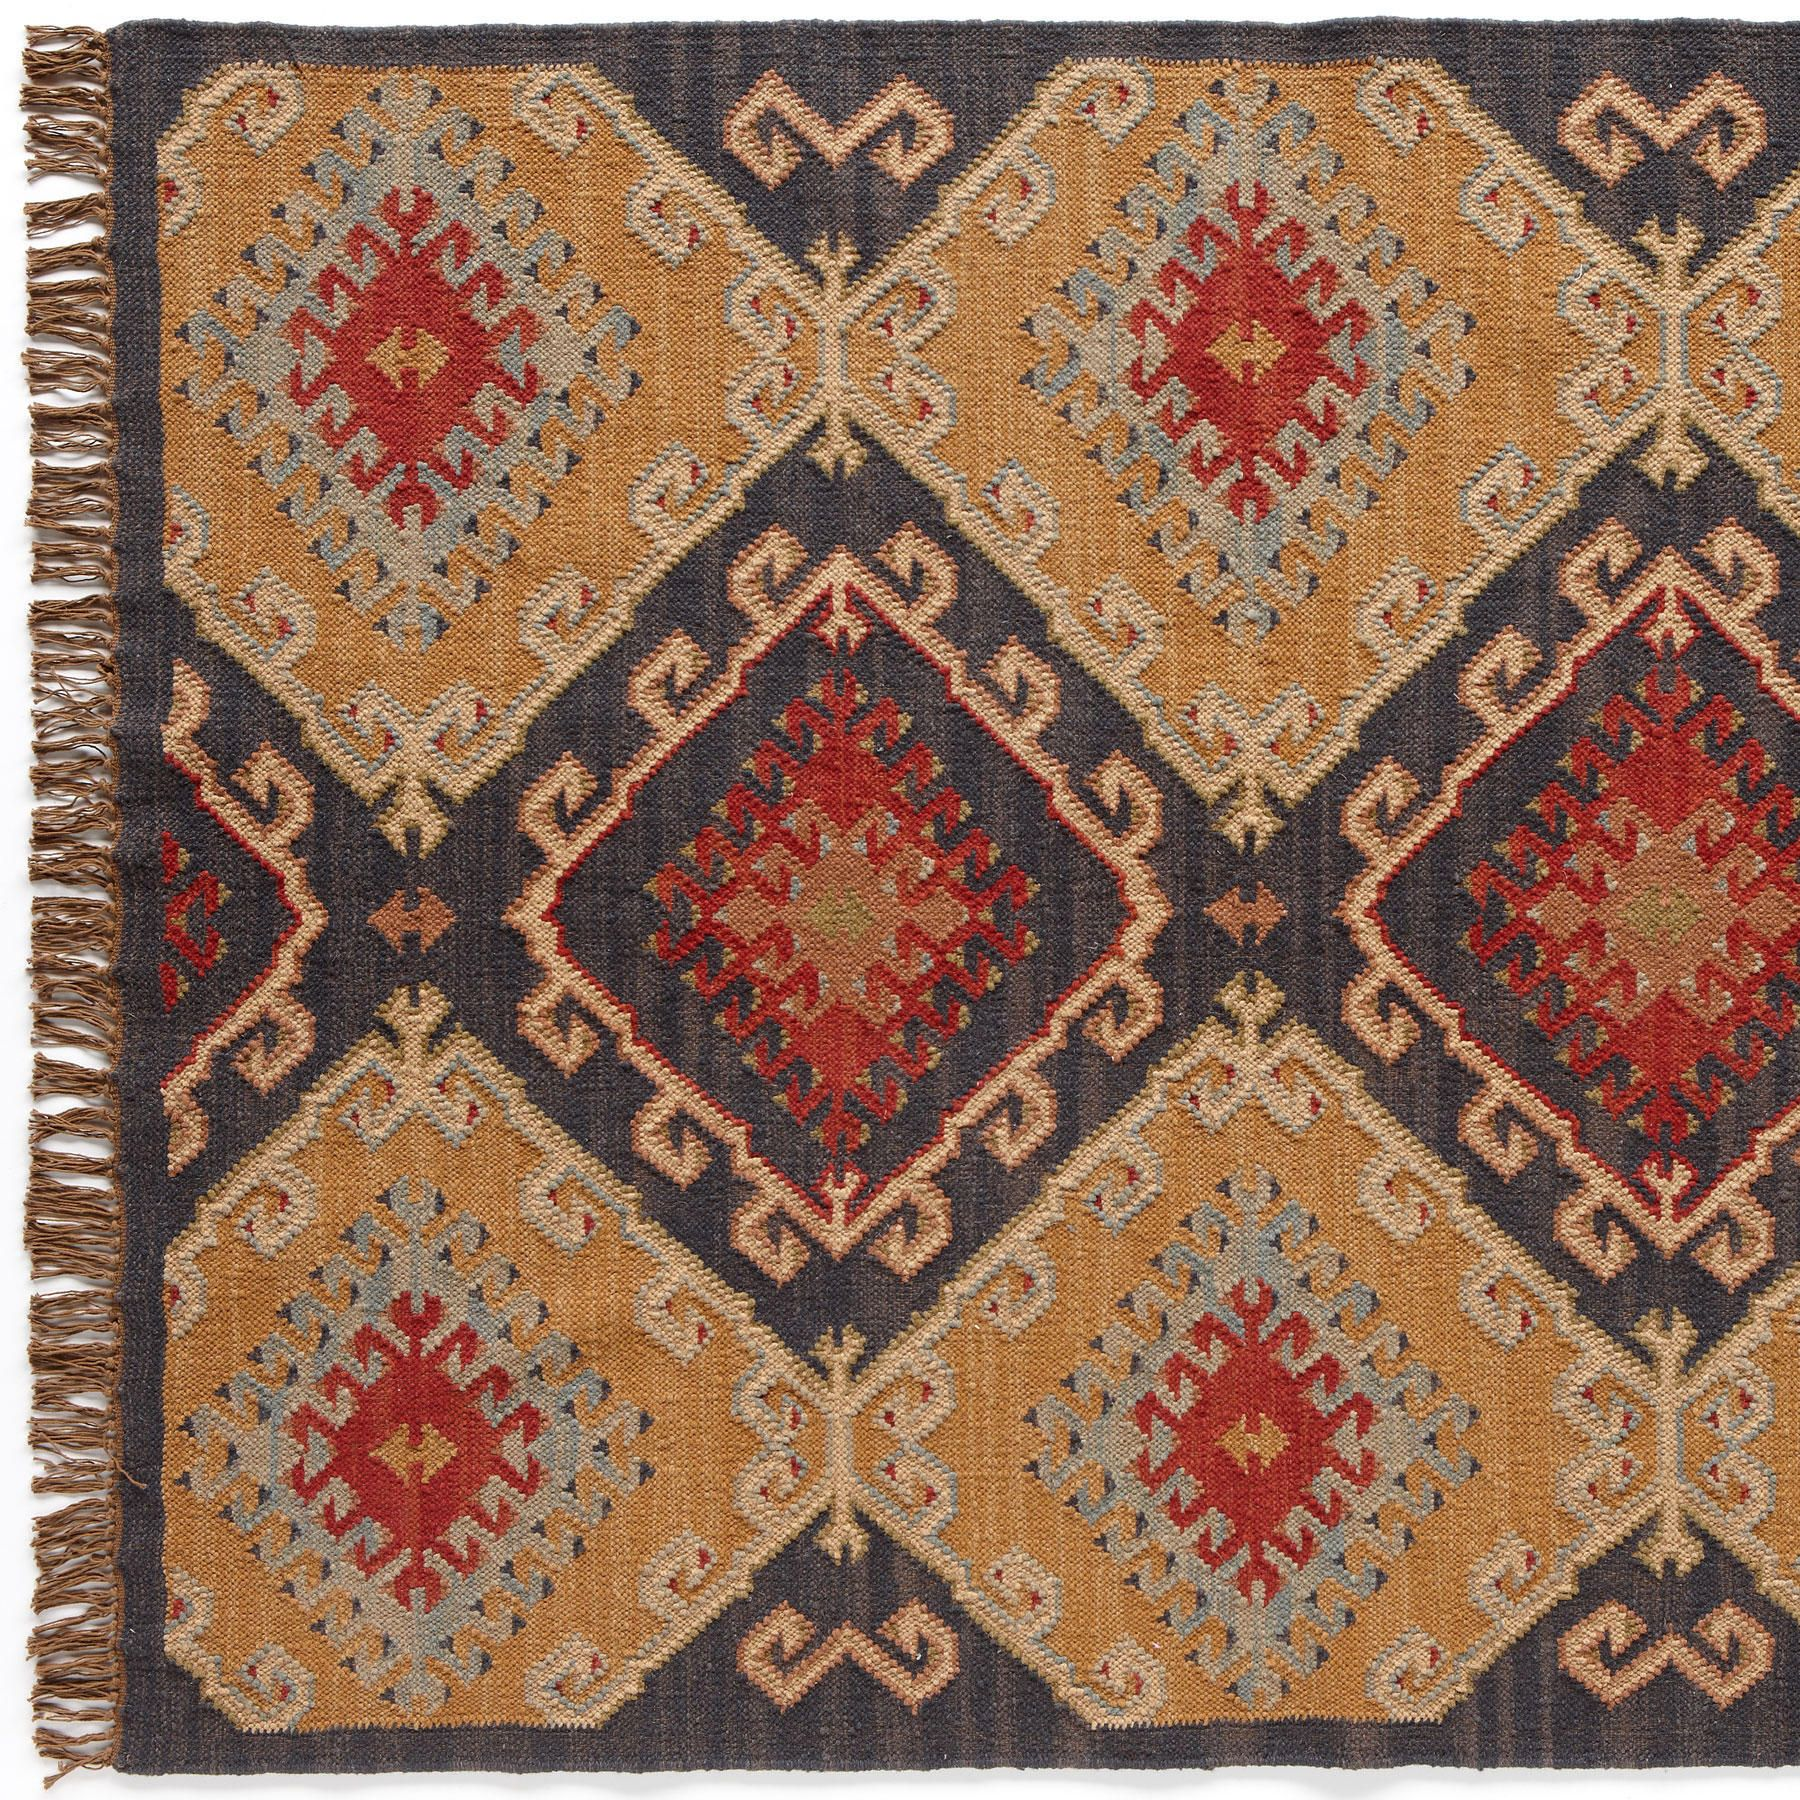 Celestial Diamond Dhurrie It S The Colors Gold Magenta Orange And Brown That Distinguish Our Wool Cotton Dhurrie Handwoven By S Dhurrie Rugs Dhurrie Rugs